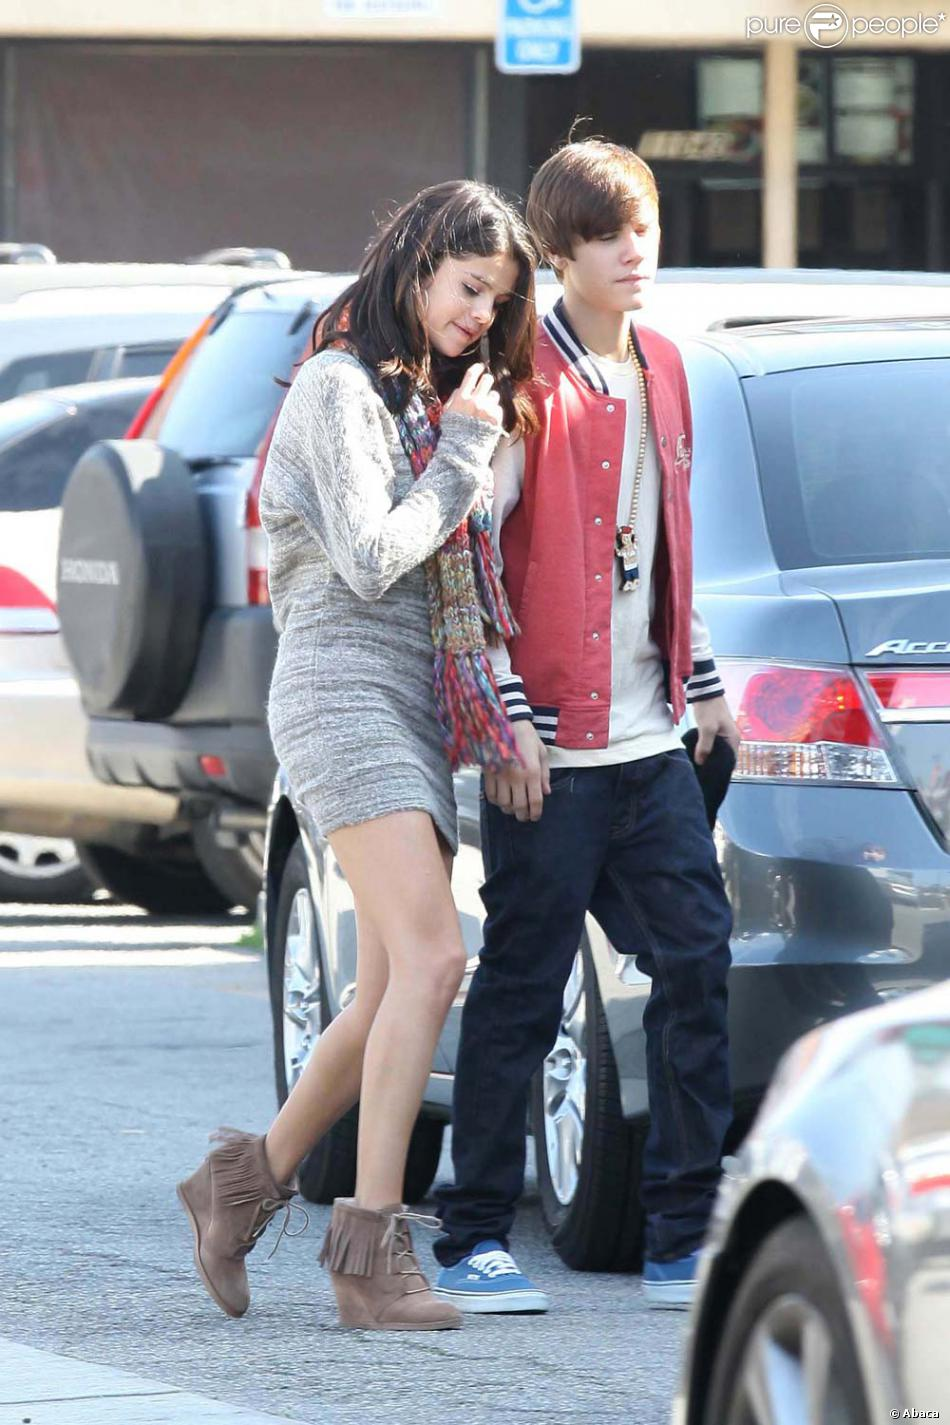 selena gomez et son petit ami justin bieber los angeles le 25 f vrier 2012. Black Bedroom Furniture Sets. Home Design Ideas